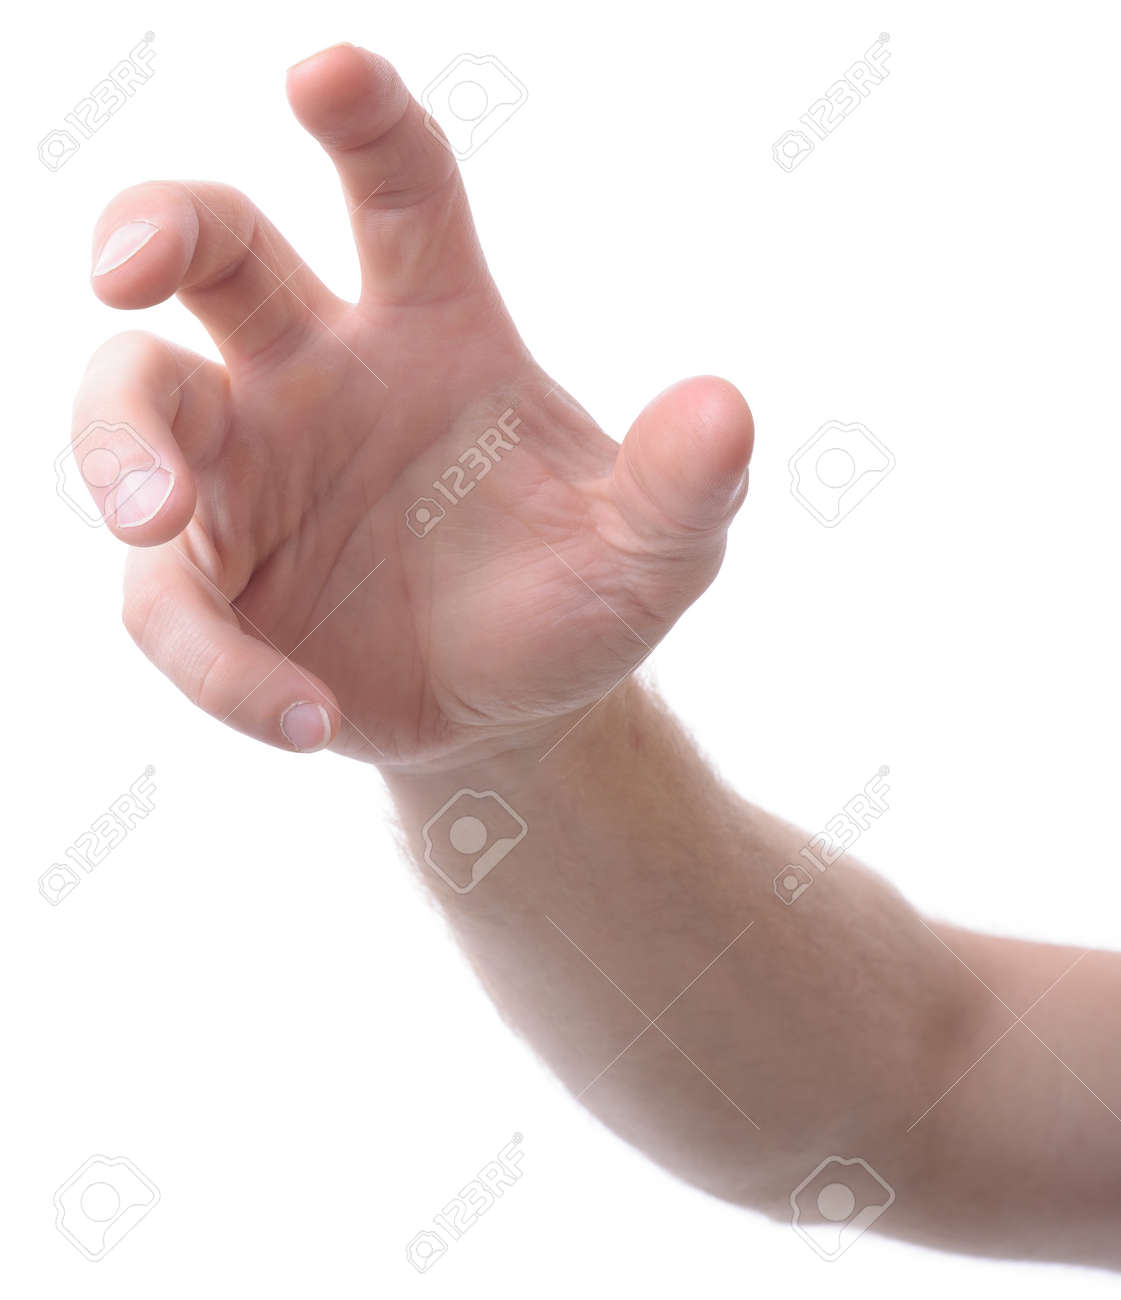 hand isolated on white gesturing grabbing or reaching - 22581488